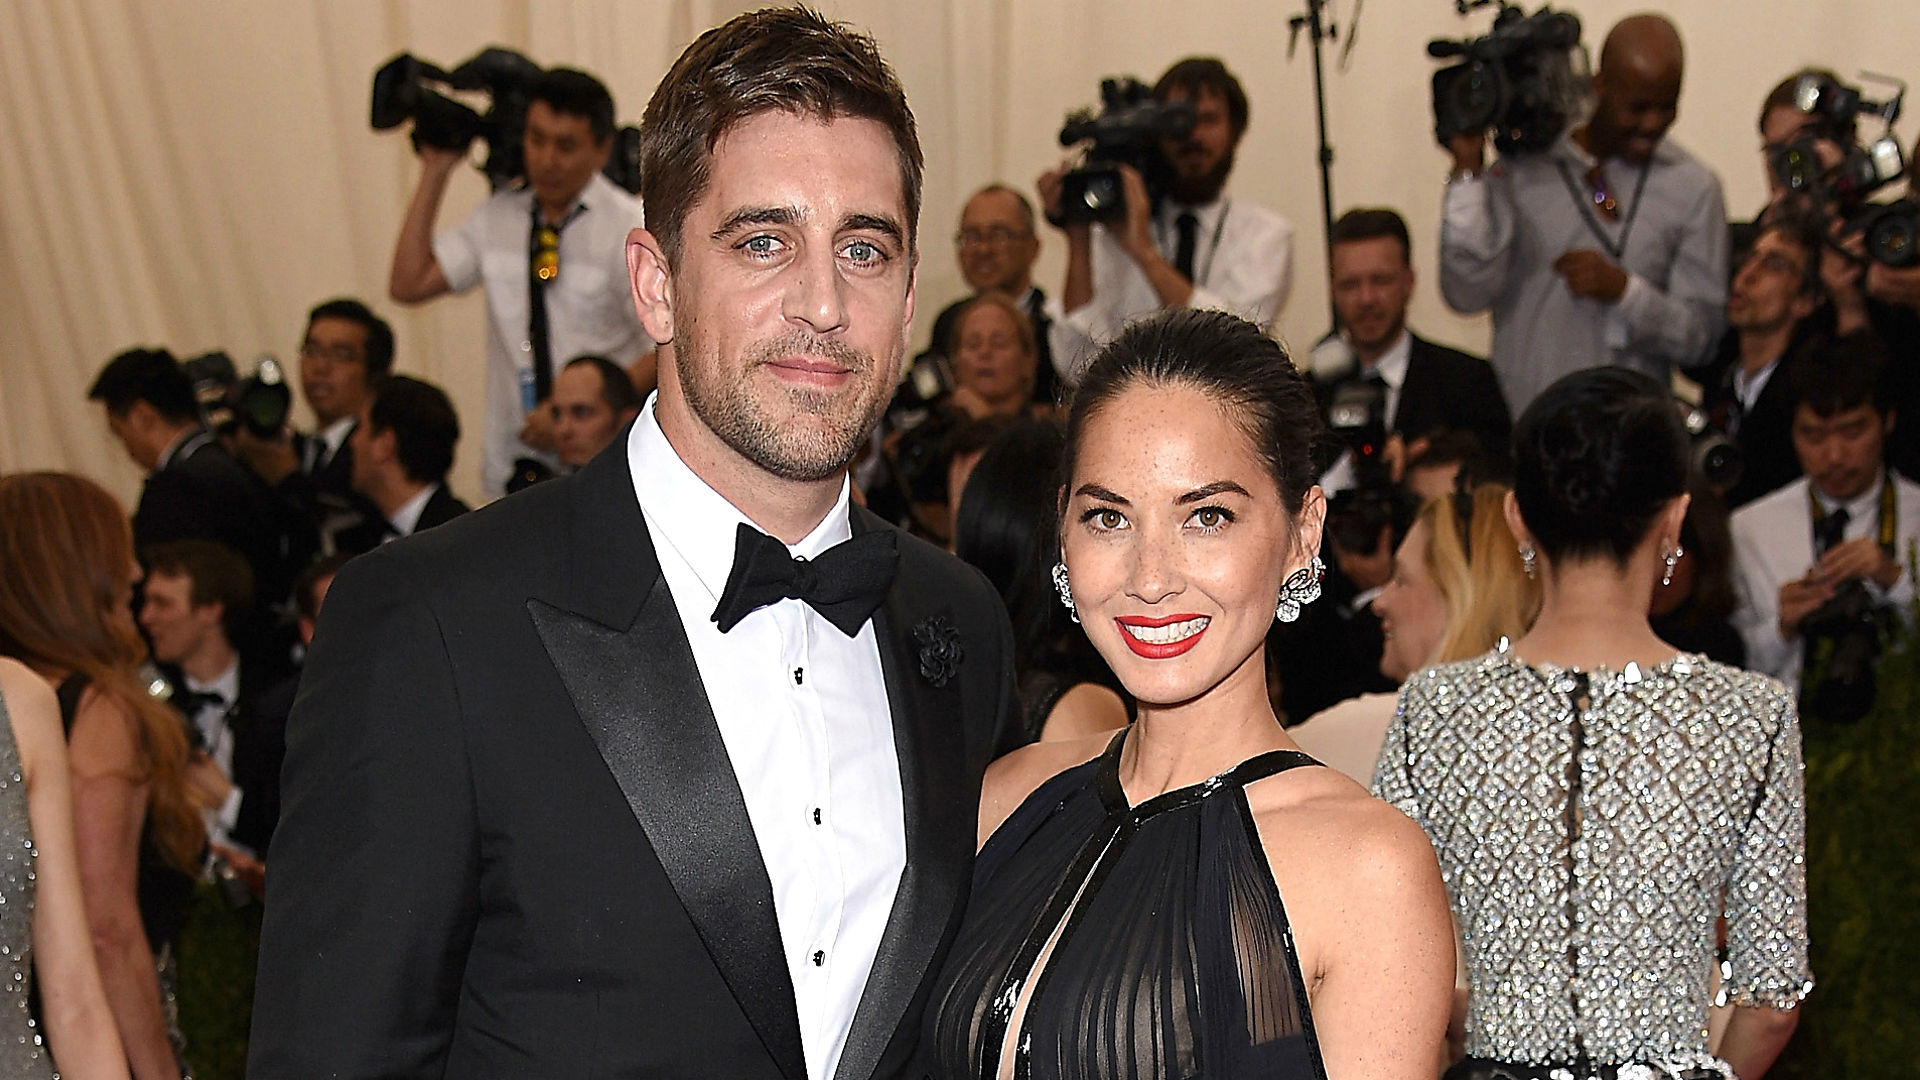 Olivia Munn Devastated By Split With Aaron Rodgers Sporting News